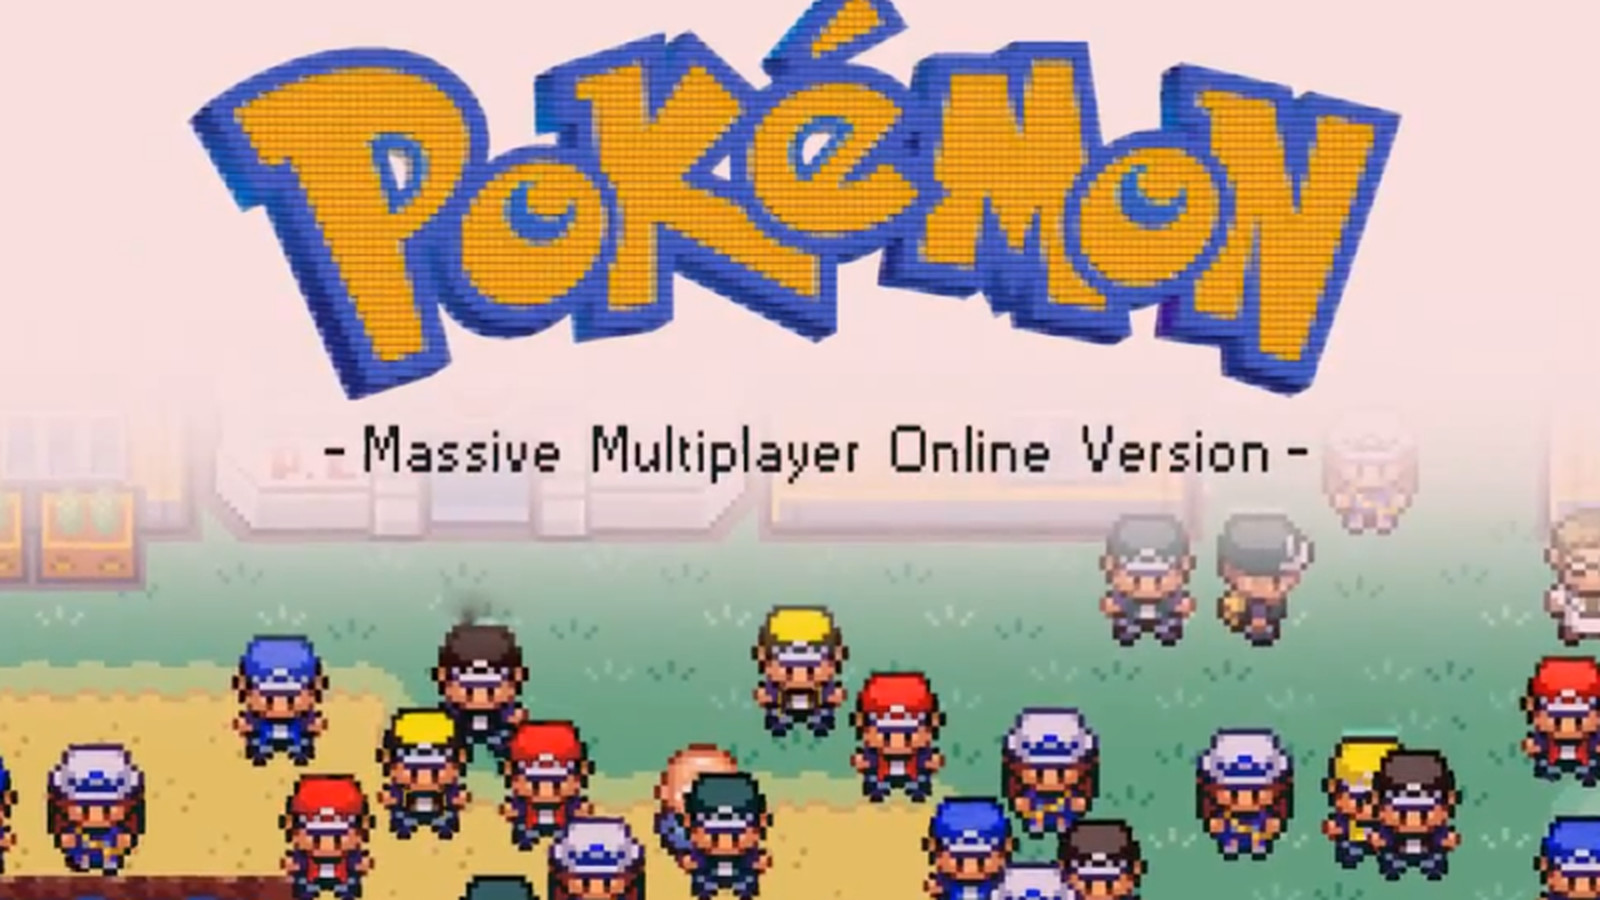 39;PokeMMO39; fan project turns 39;Pokemon Fire Red39; into an